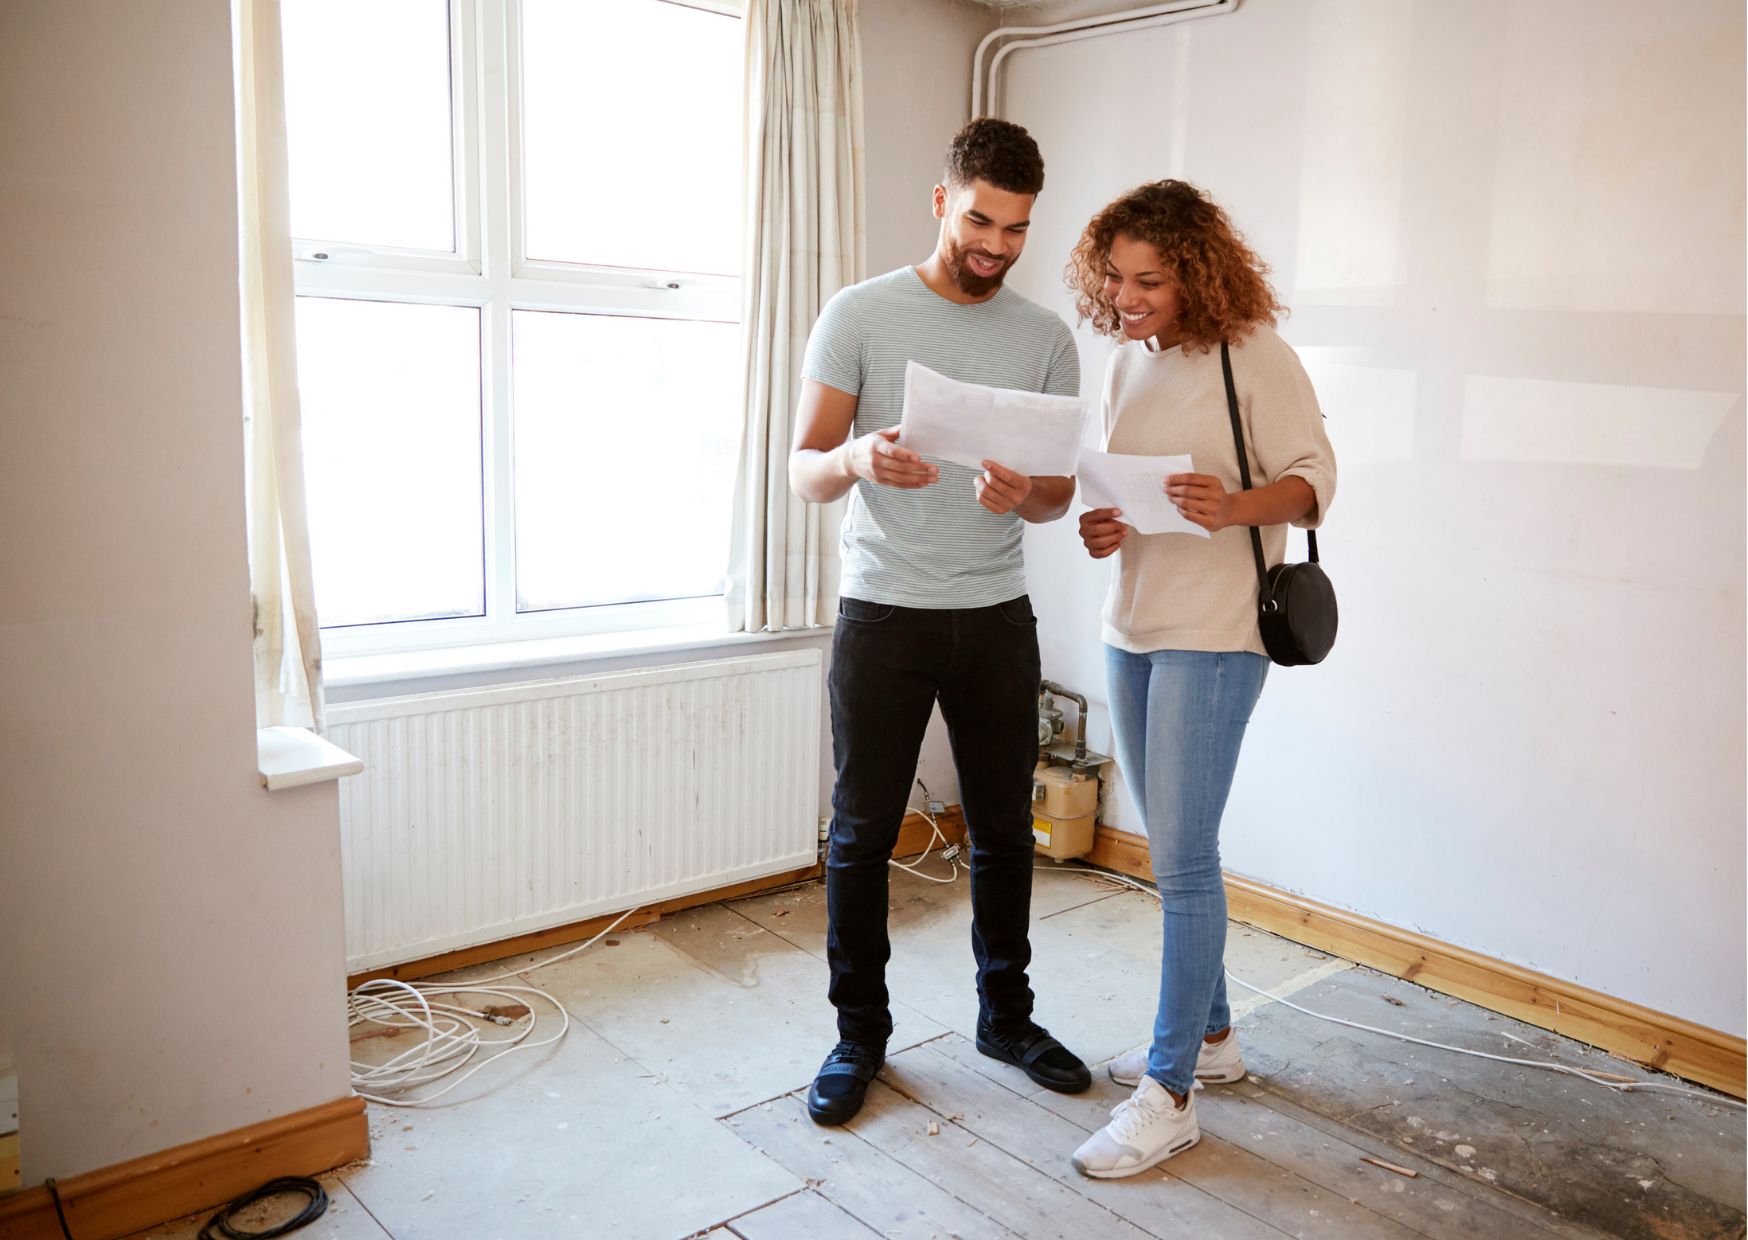 couple looking at mortgage application checklist in new house